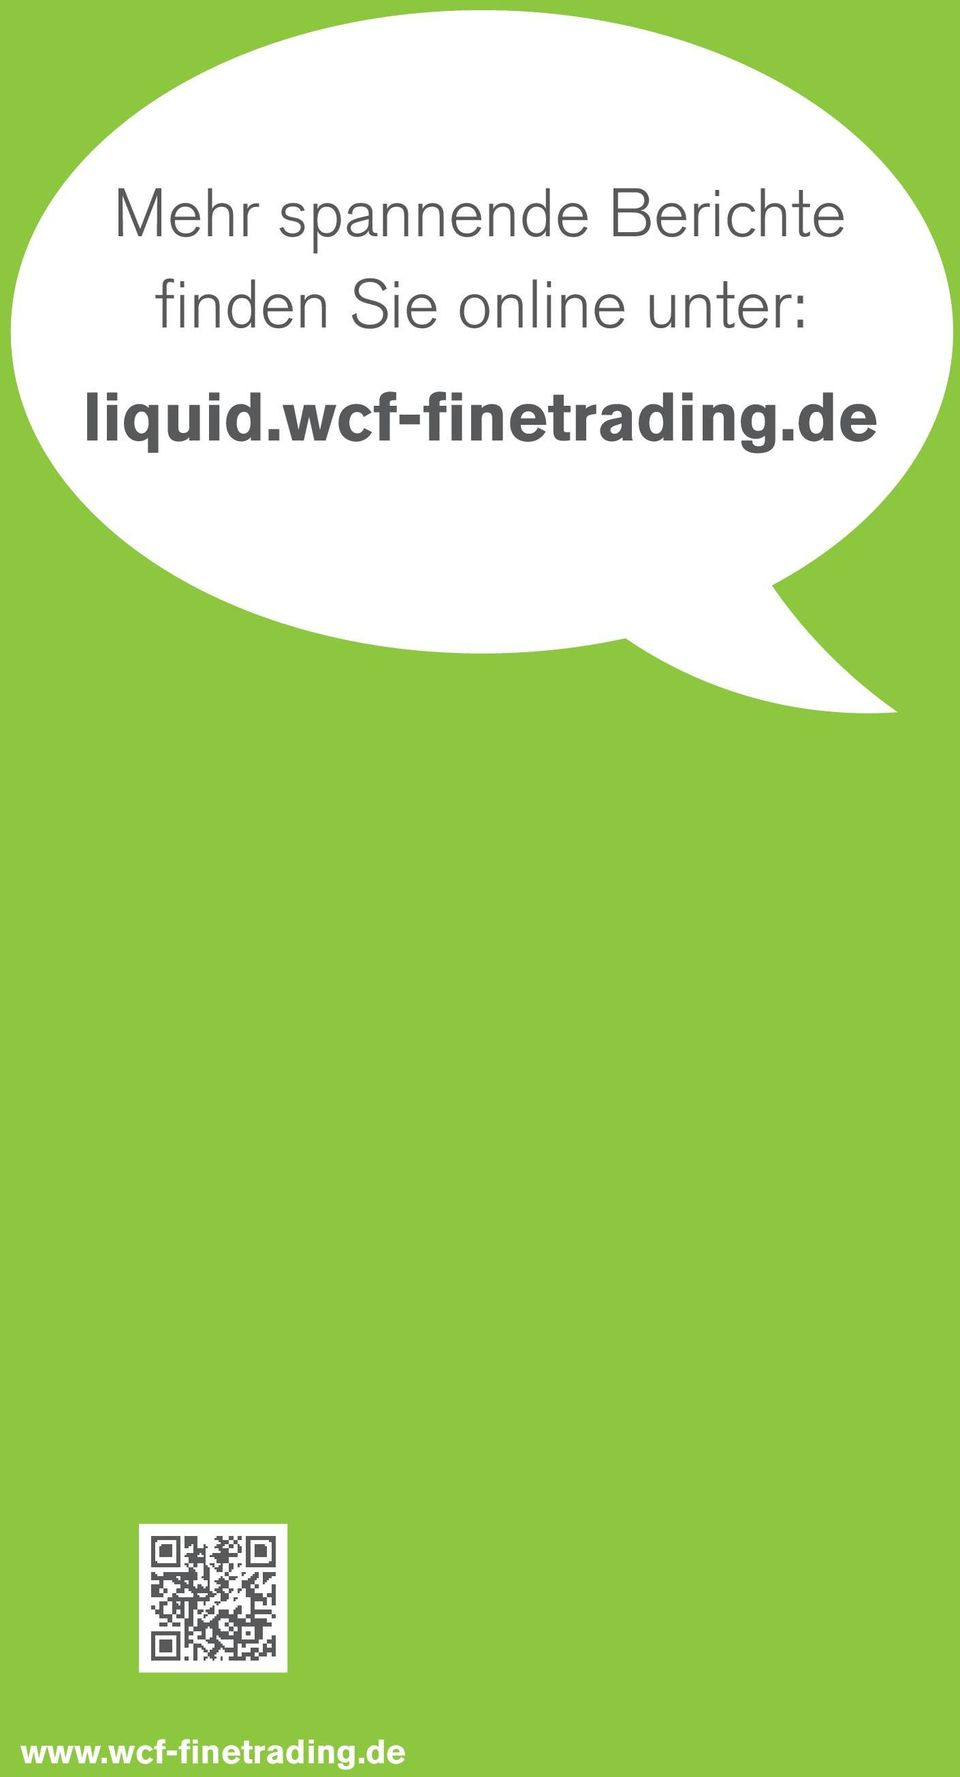 liquid.wcf-finetrading.